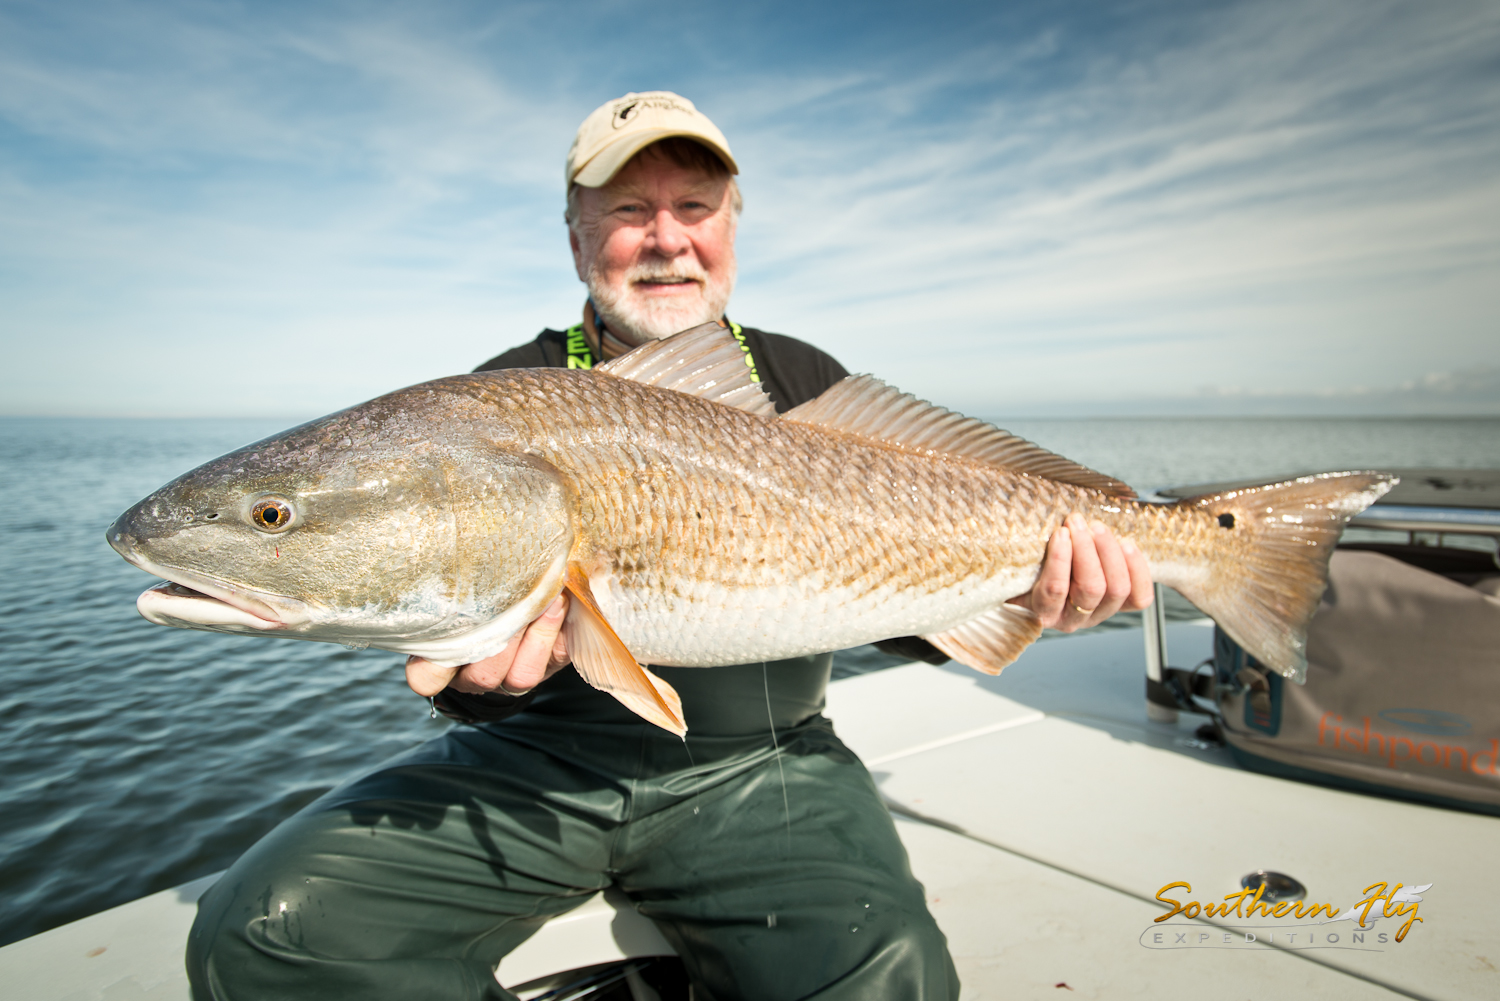 Fishing guides in Louisiana and fishing for redfish with southern fly expeditions